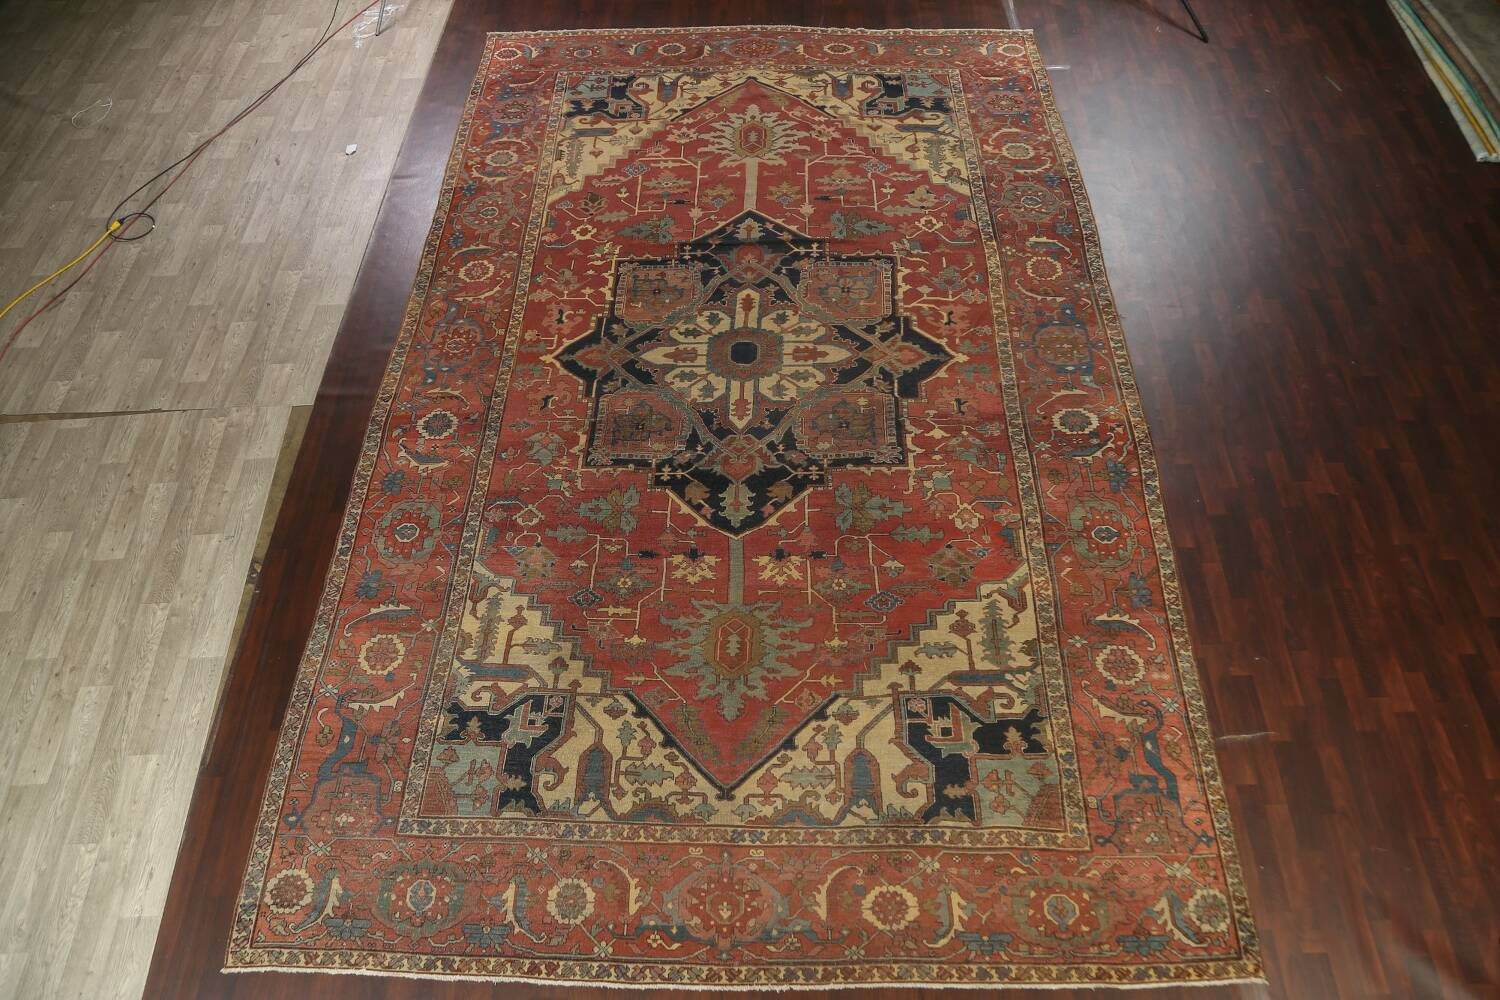 Pre-1900 Antique Vegetable Dye Heriz Serapi Persian Area Rug 12x18 image 2